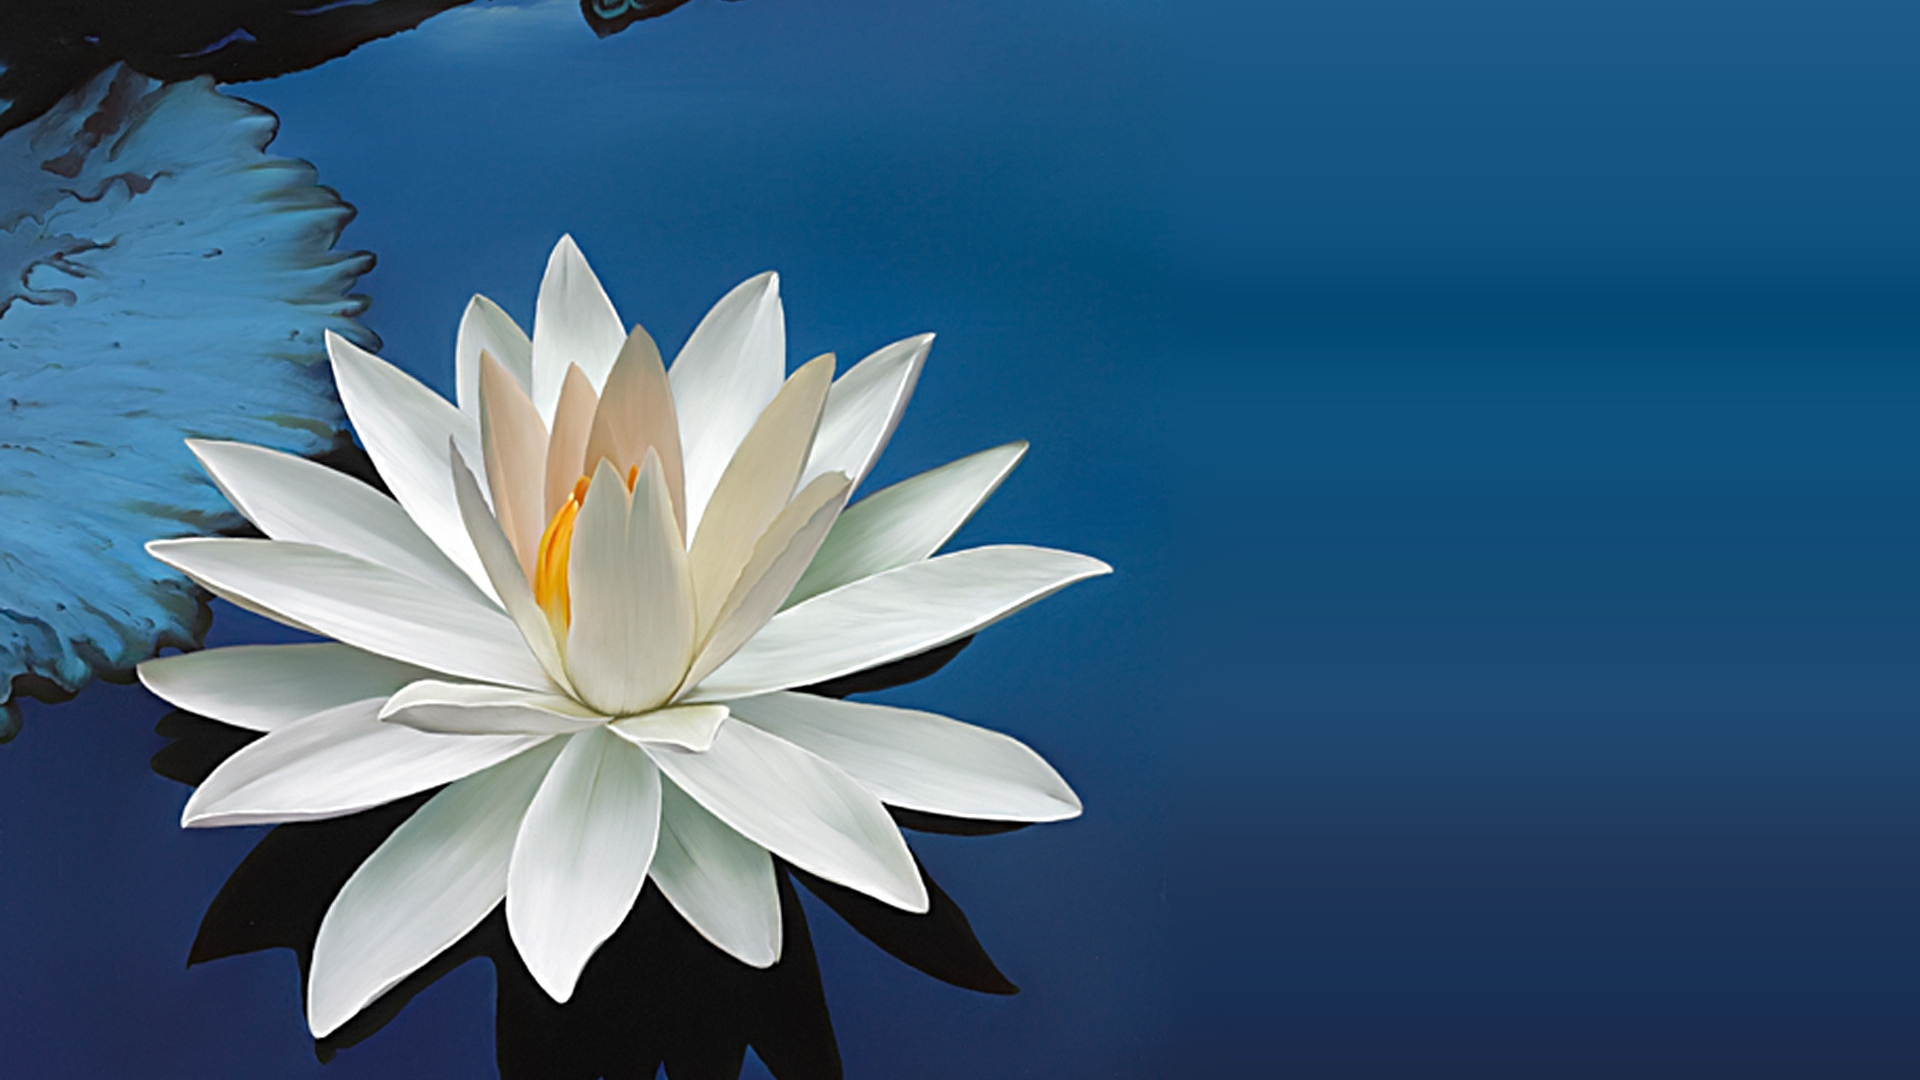 Get The Latest Water Lily Flower Leaf News Pictures And Videos Learn All About From Wallpapers4u Org Your Wallpaper